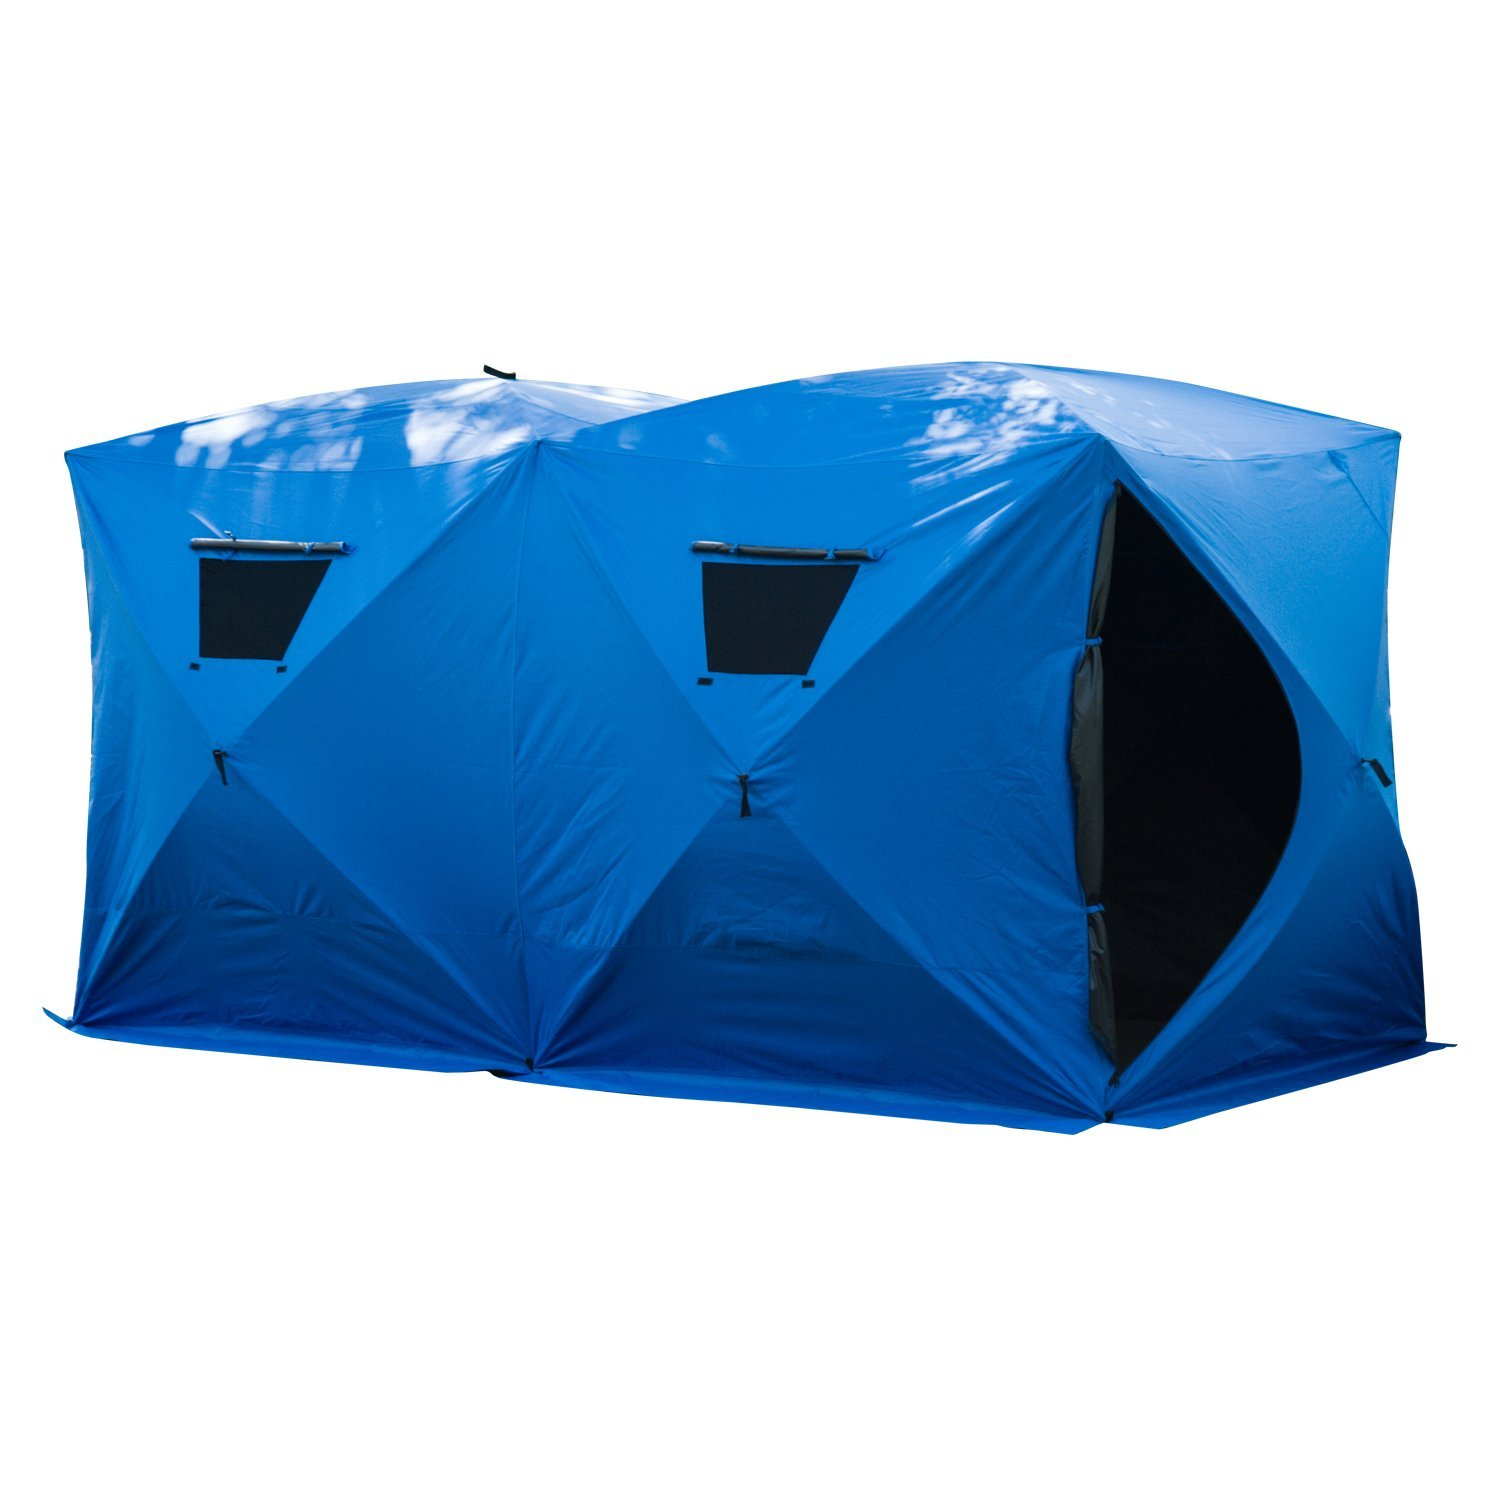 Aosom Outsunny Insulated Pop Up Portable Ice Fishing Shel...